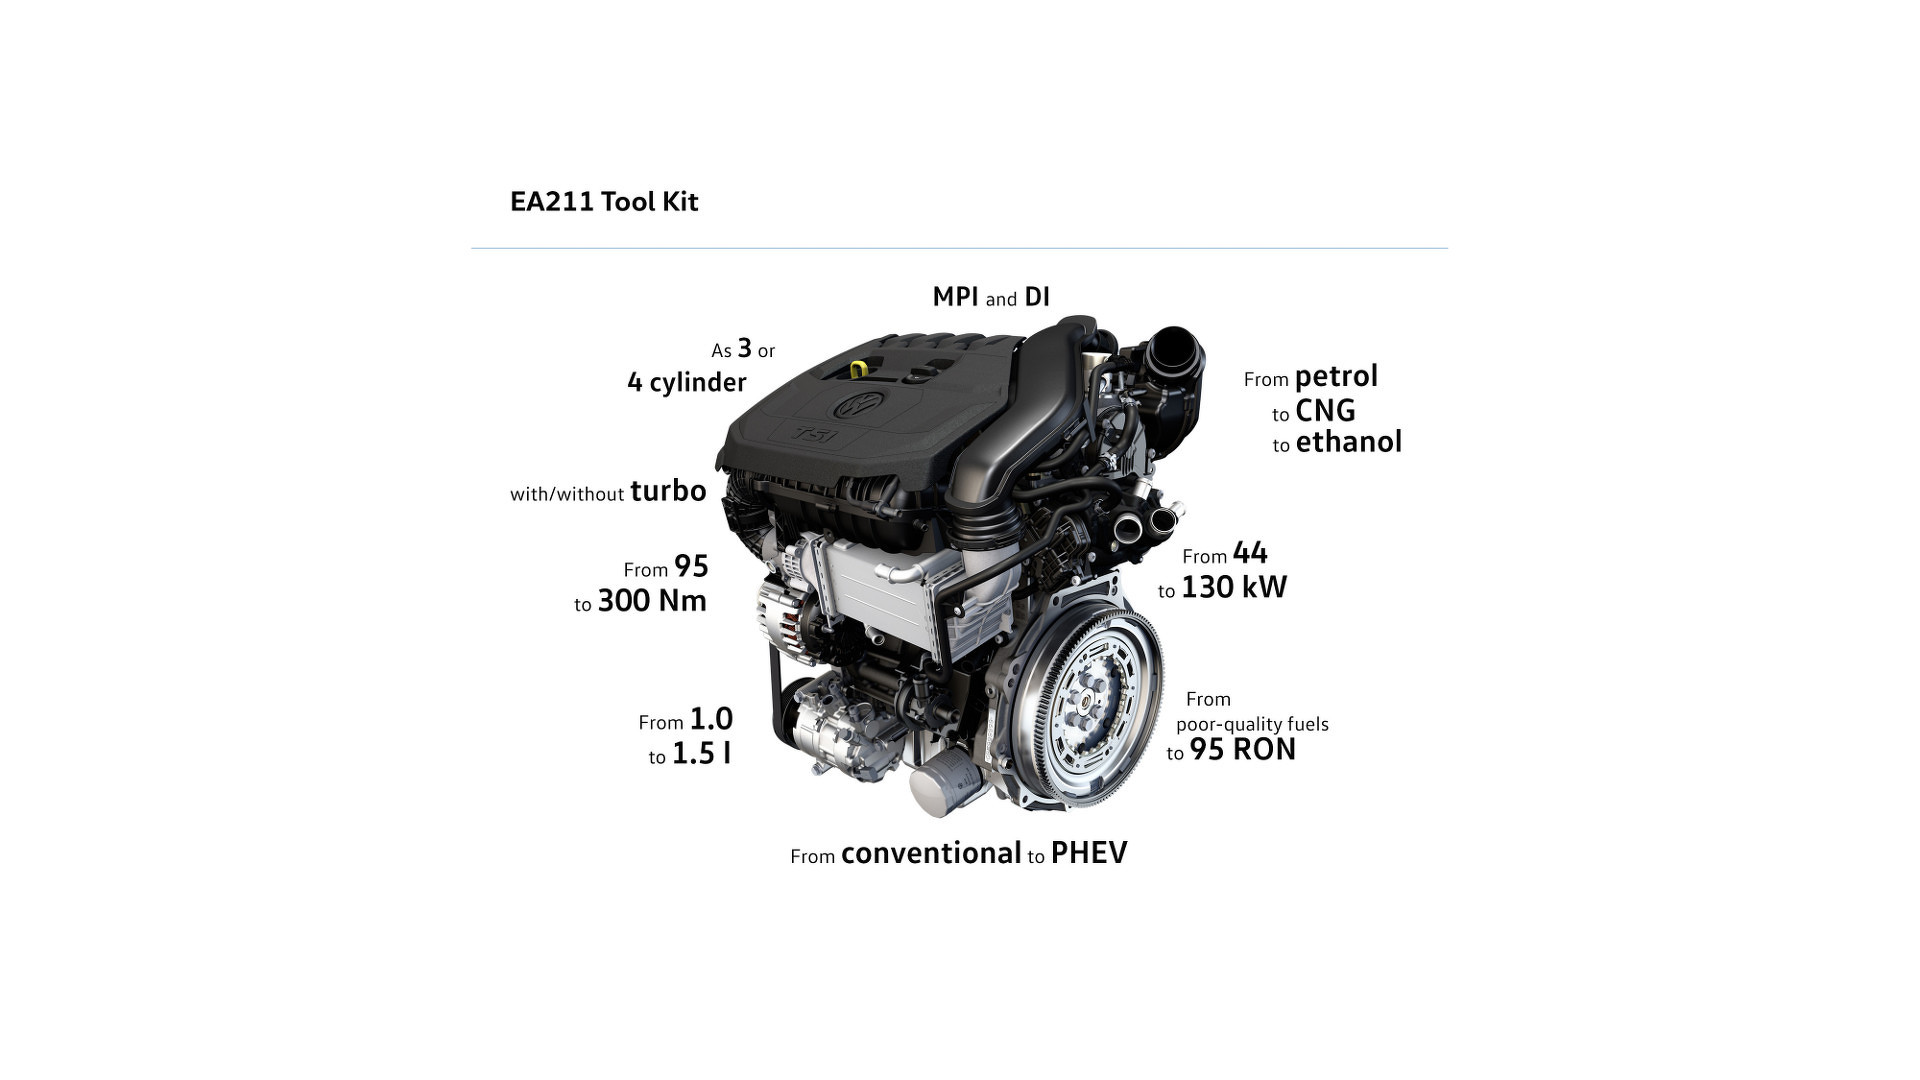 Vw Introduces New 1 5 Liter Tsi Evo Engine